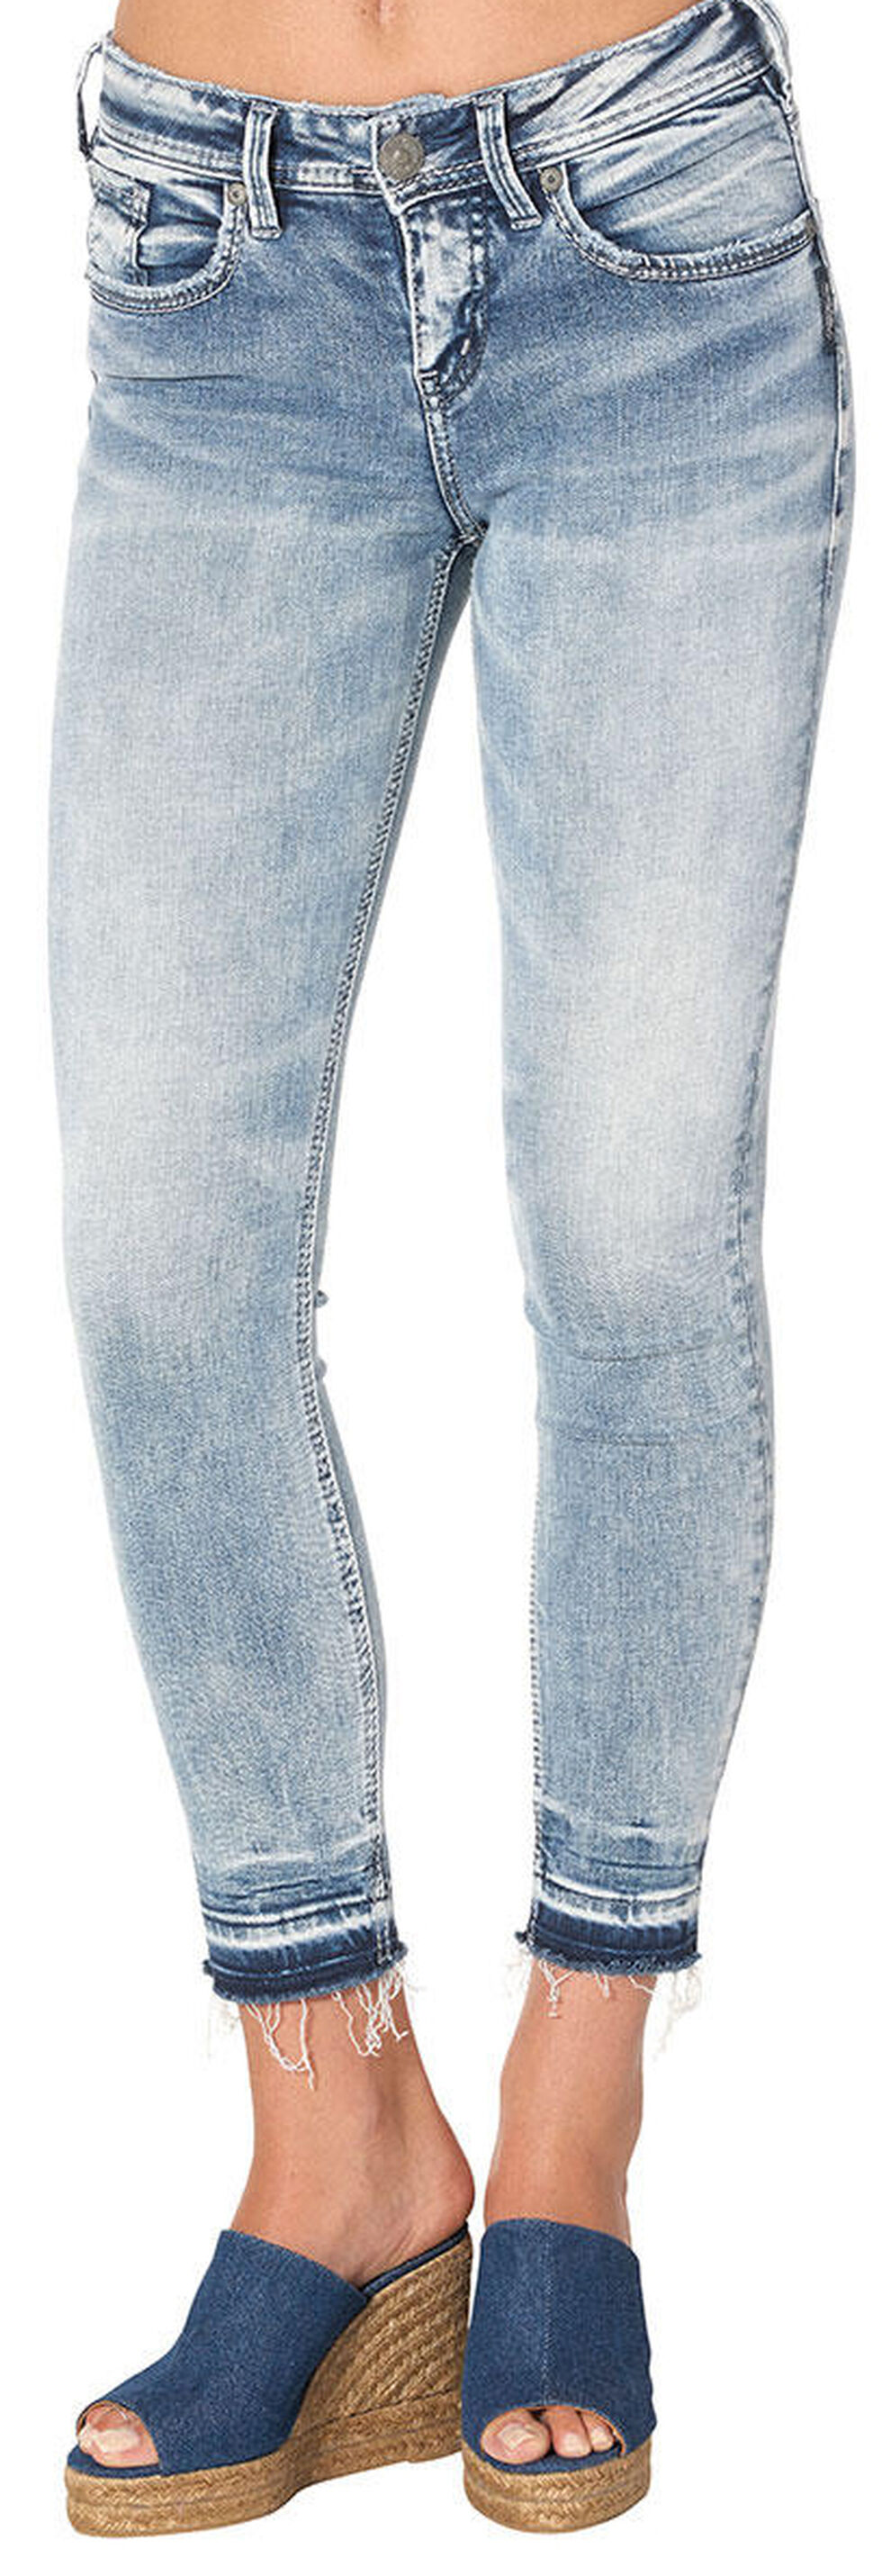 Silver Women's Avery Light Wash Ankle Skinny Jeans - Plus, Indigo, hi-res